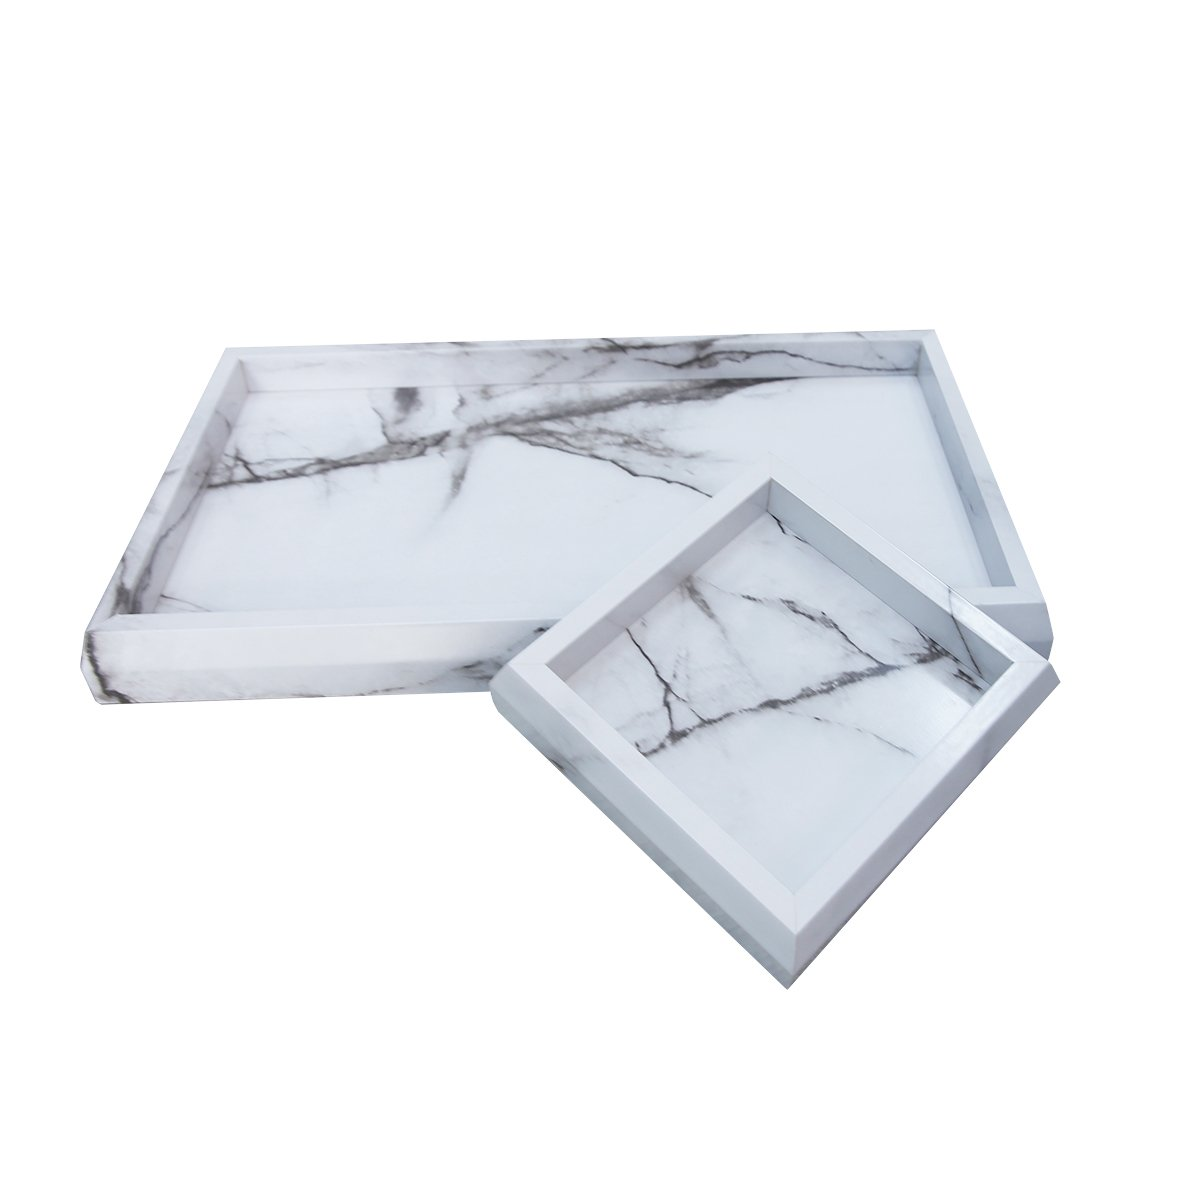 Roomfitters Marble Print Vanity Tray Set, Best Bathroom Catchall Trays for Jewelry Perfume, Upgraded Version Water Resistant, Anti-Scratch by Roomfitters (Image #4)